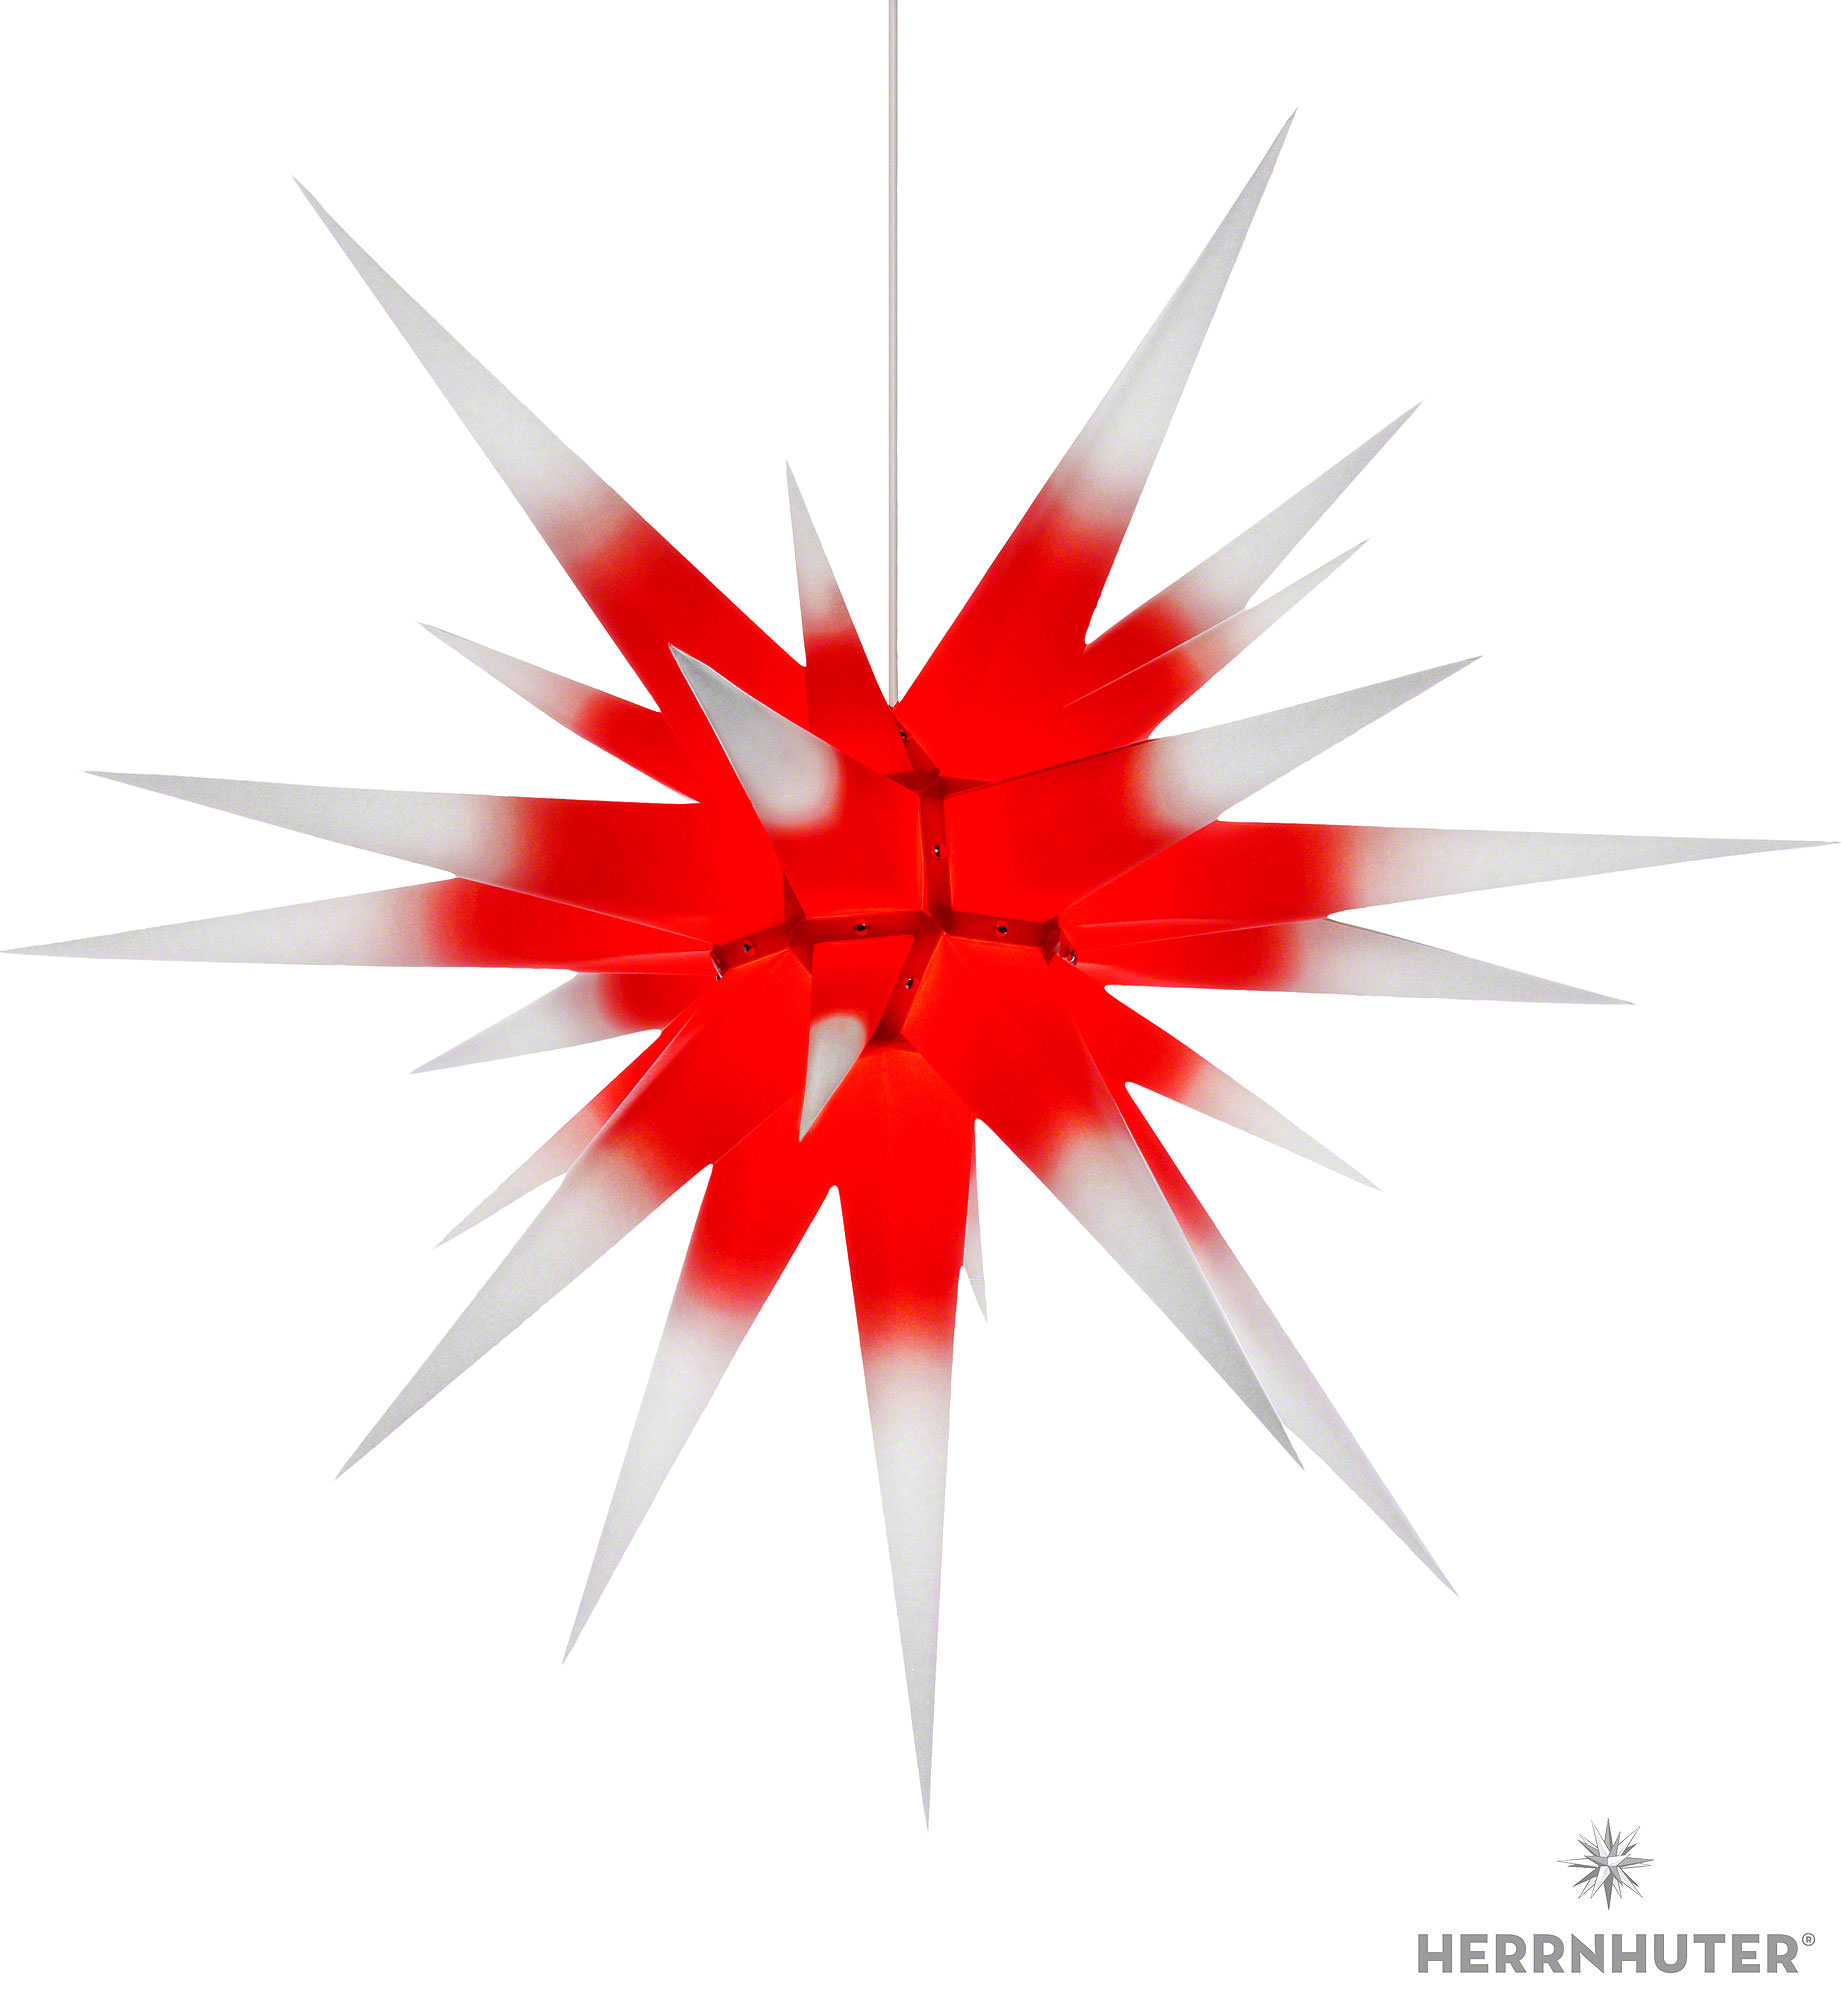 herrnhuter moravian star i8 white with red core paper 80cm 31in ch by herrnhuter sterne. Black Bedroom Furniture Sets. Home Design Ideas